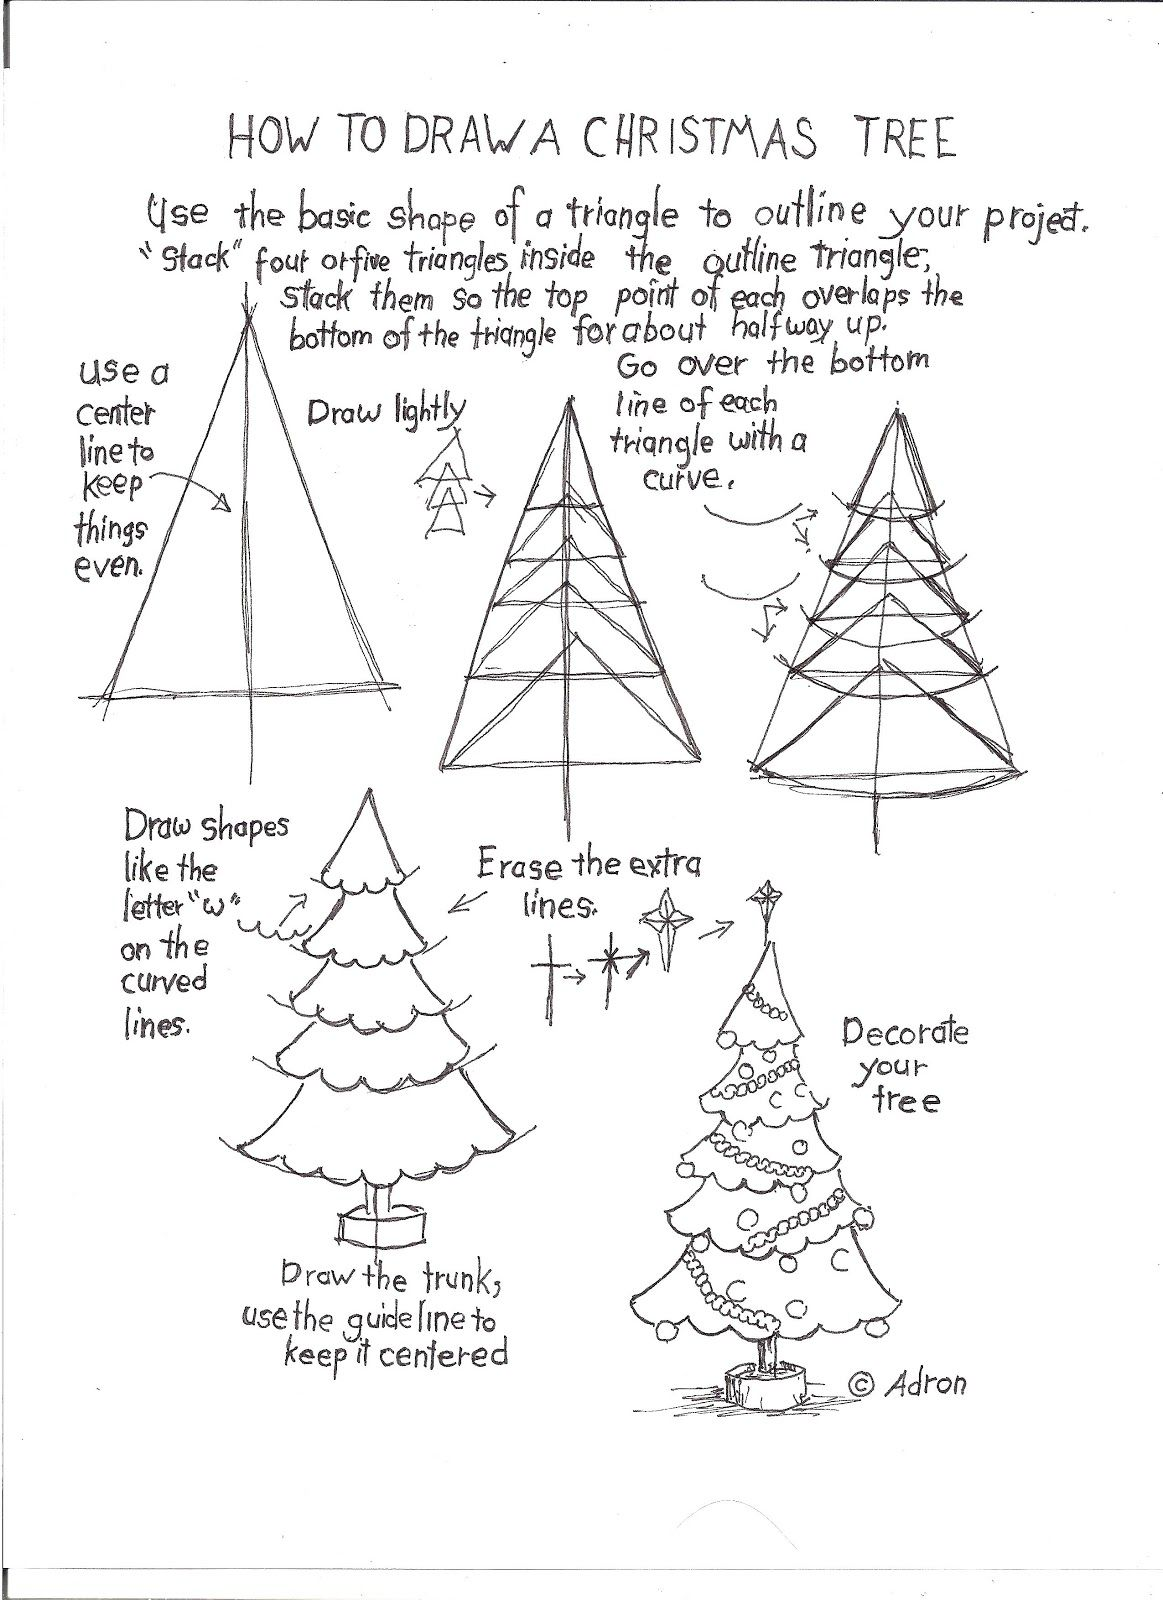 How To Draw A Christmas Tree Worksheet